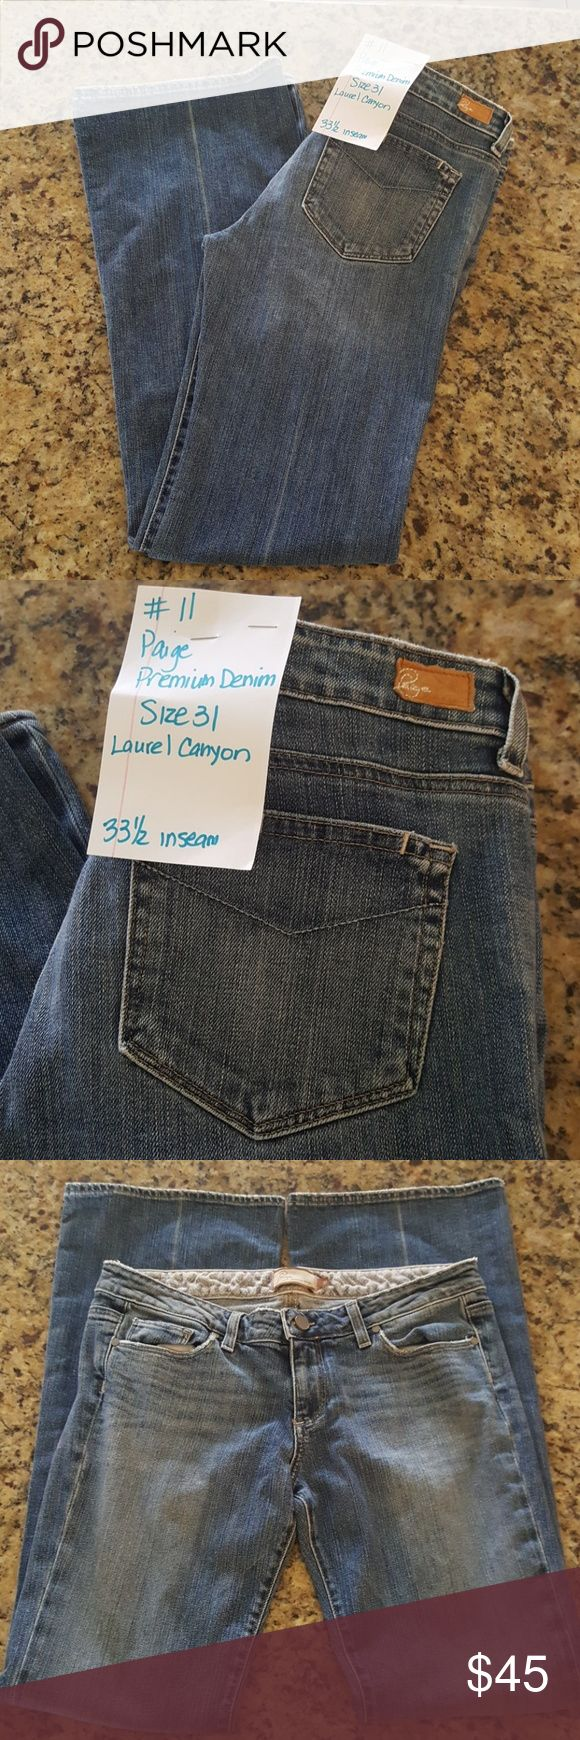 Paige premium denim jeans Paige premium denim laurel canyon jeans.  Size 31 with 33 1/2 inch inseam. Made in USA. Open to all offers.  Love to bundle!! Paige Jeans Jeans